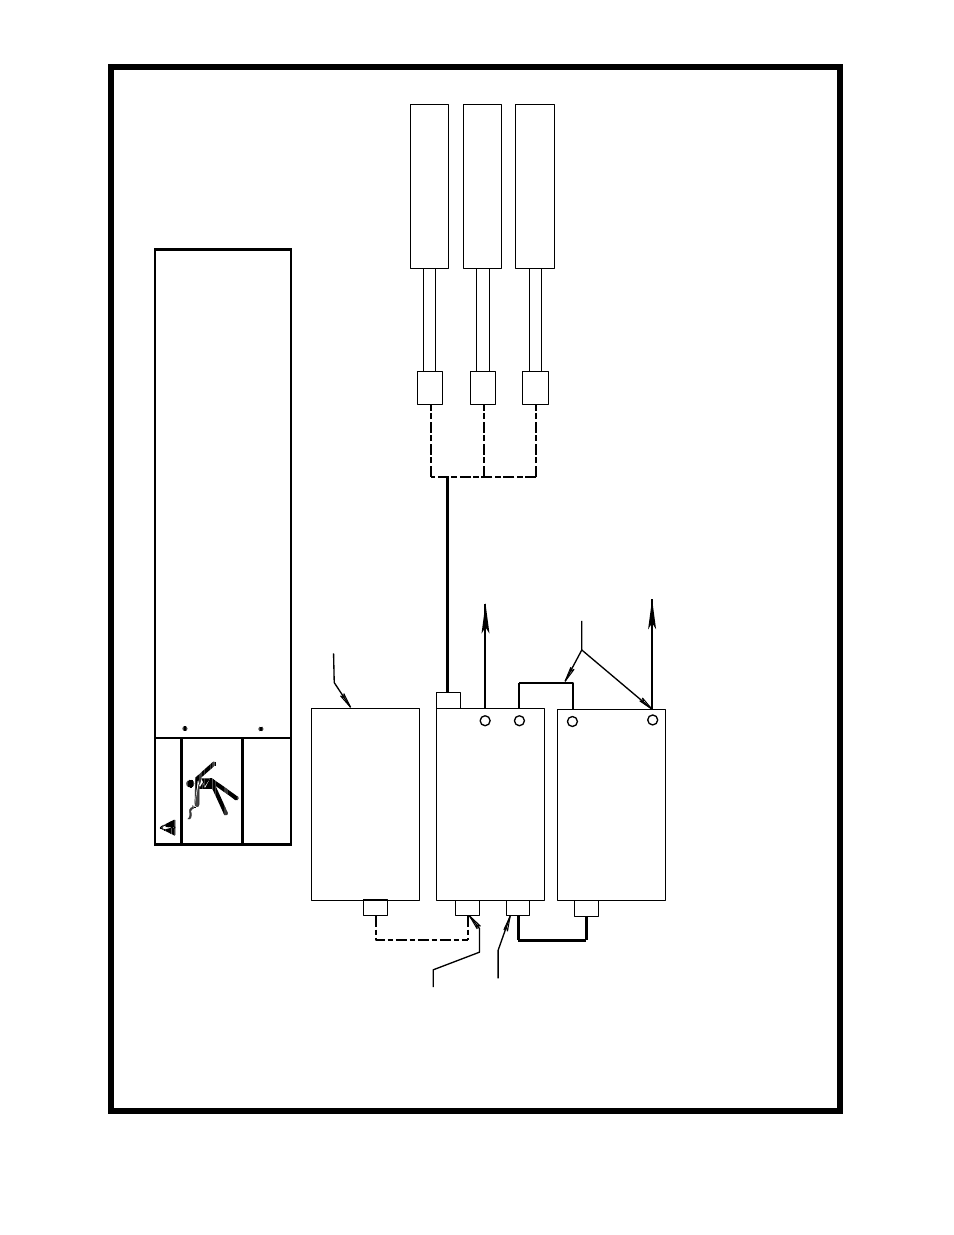 K870 Amptrol Wiring Diagram from www.manualsdir.com